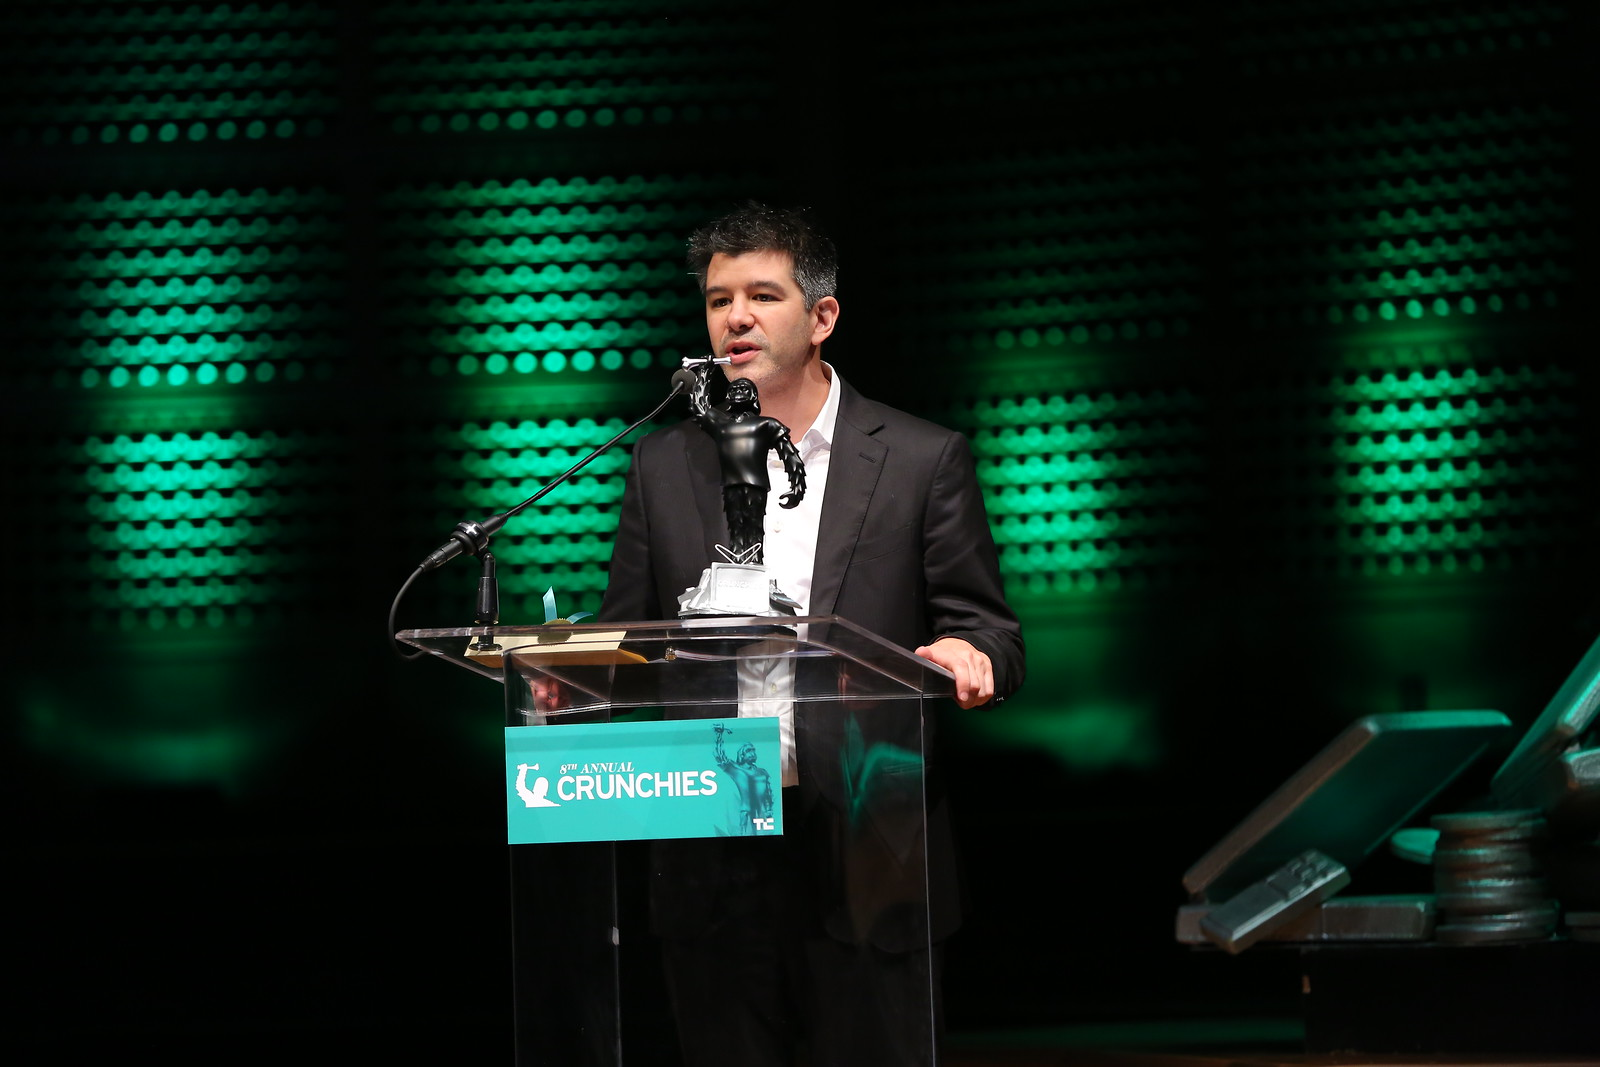 Uber CEO Travis Kalanick accepts the award for Best Overall Startup of 2014.